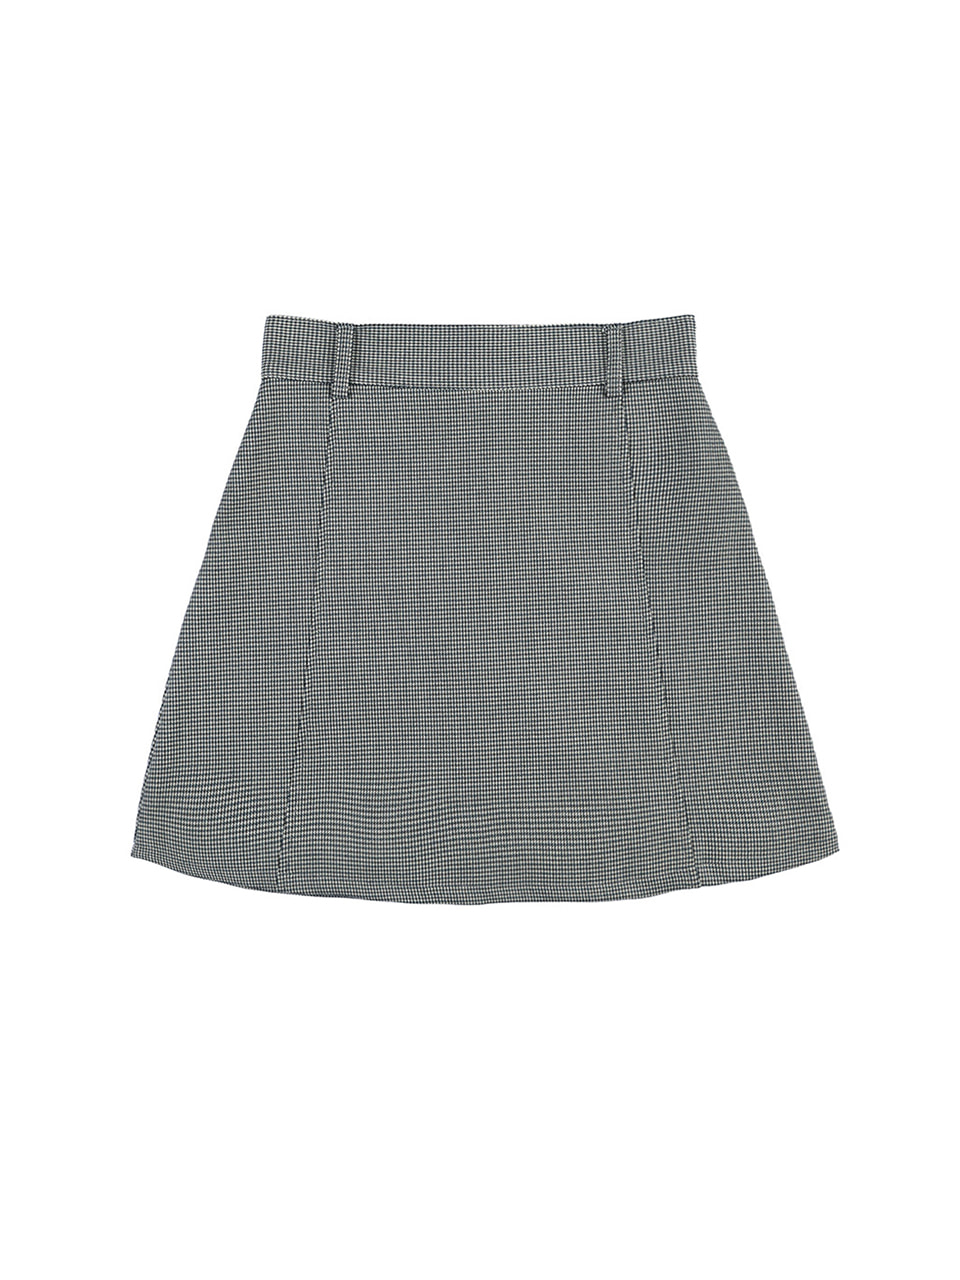 mgmg houndtooth check skirt_olive